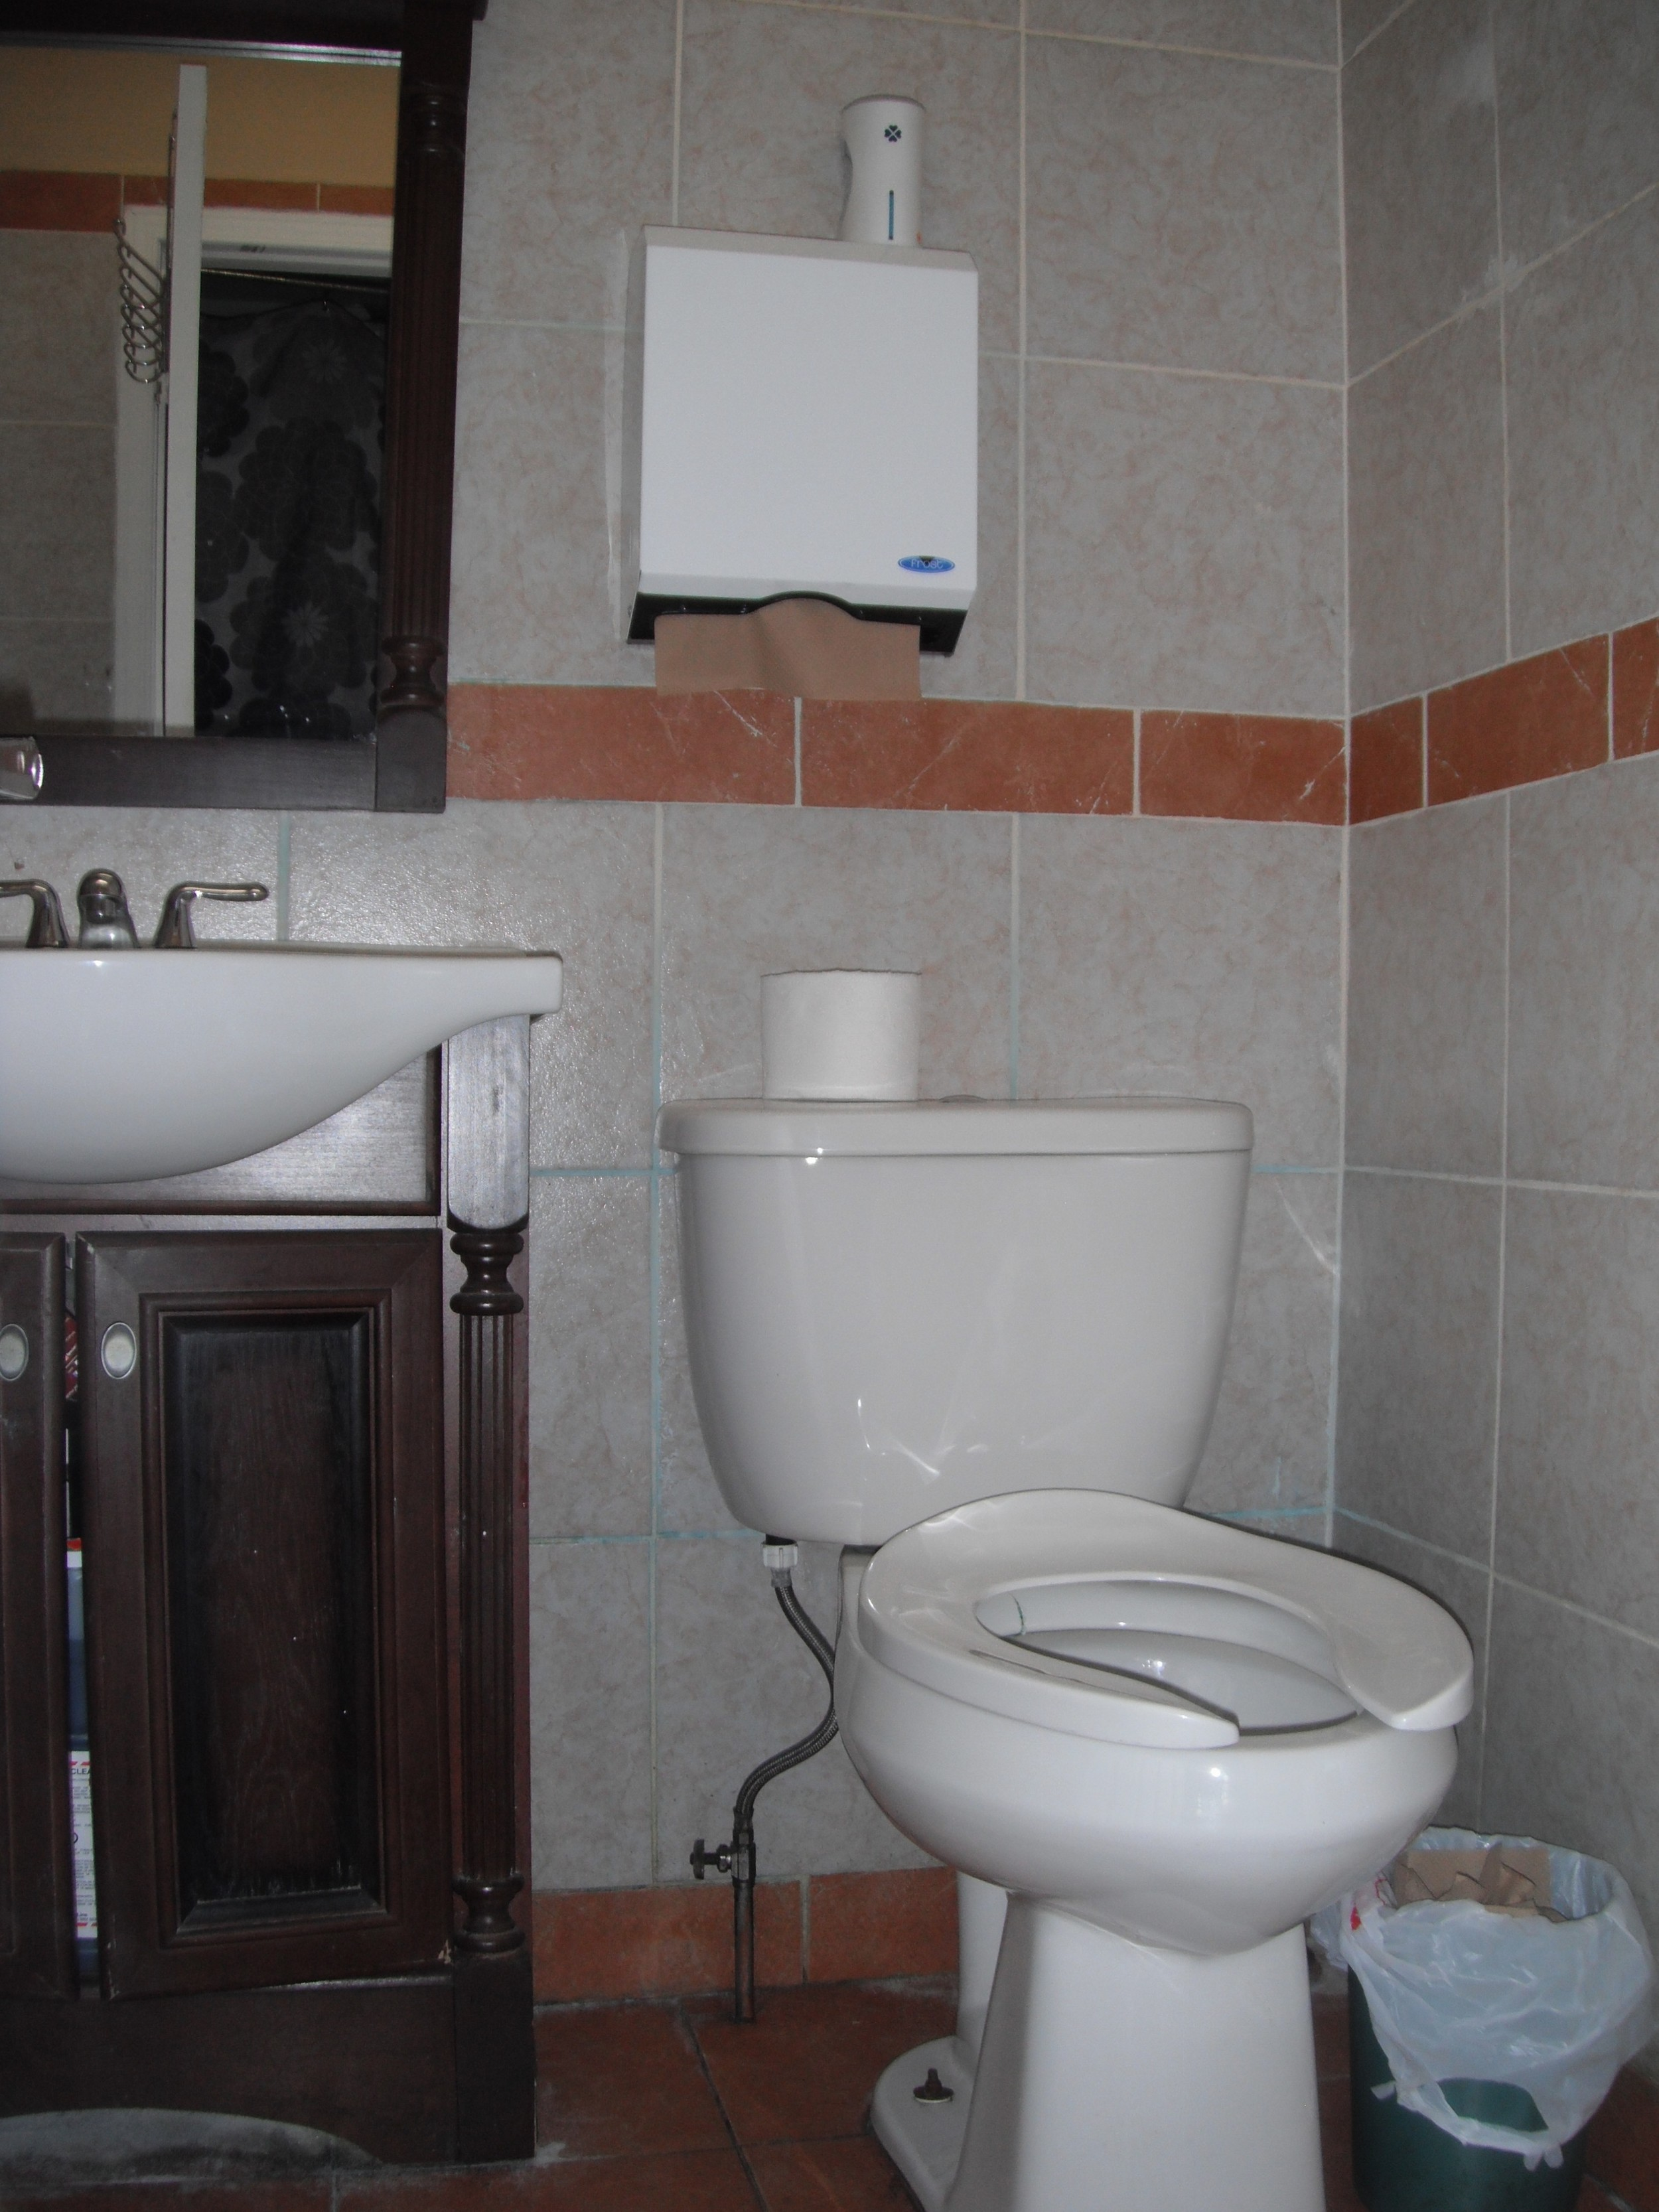 Picture of accessible washroom. No grab bars present.